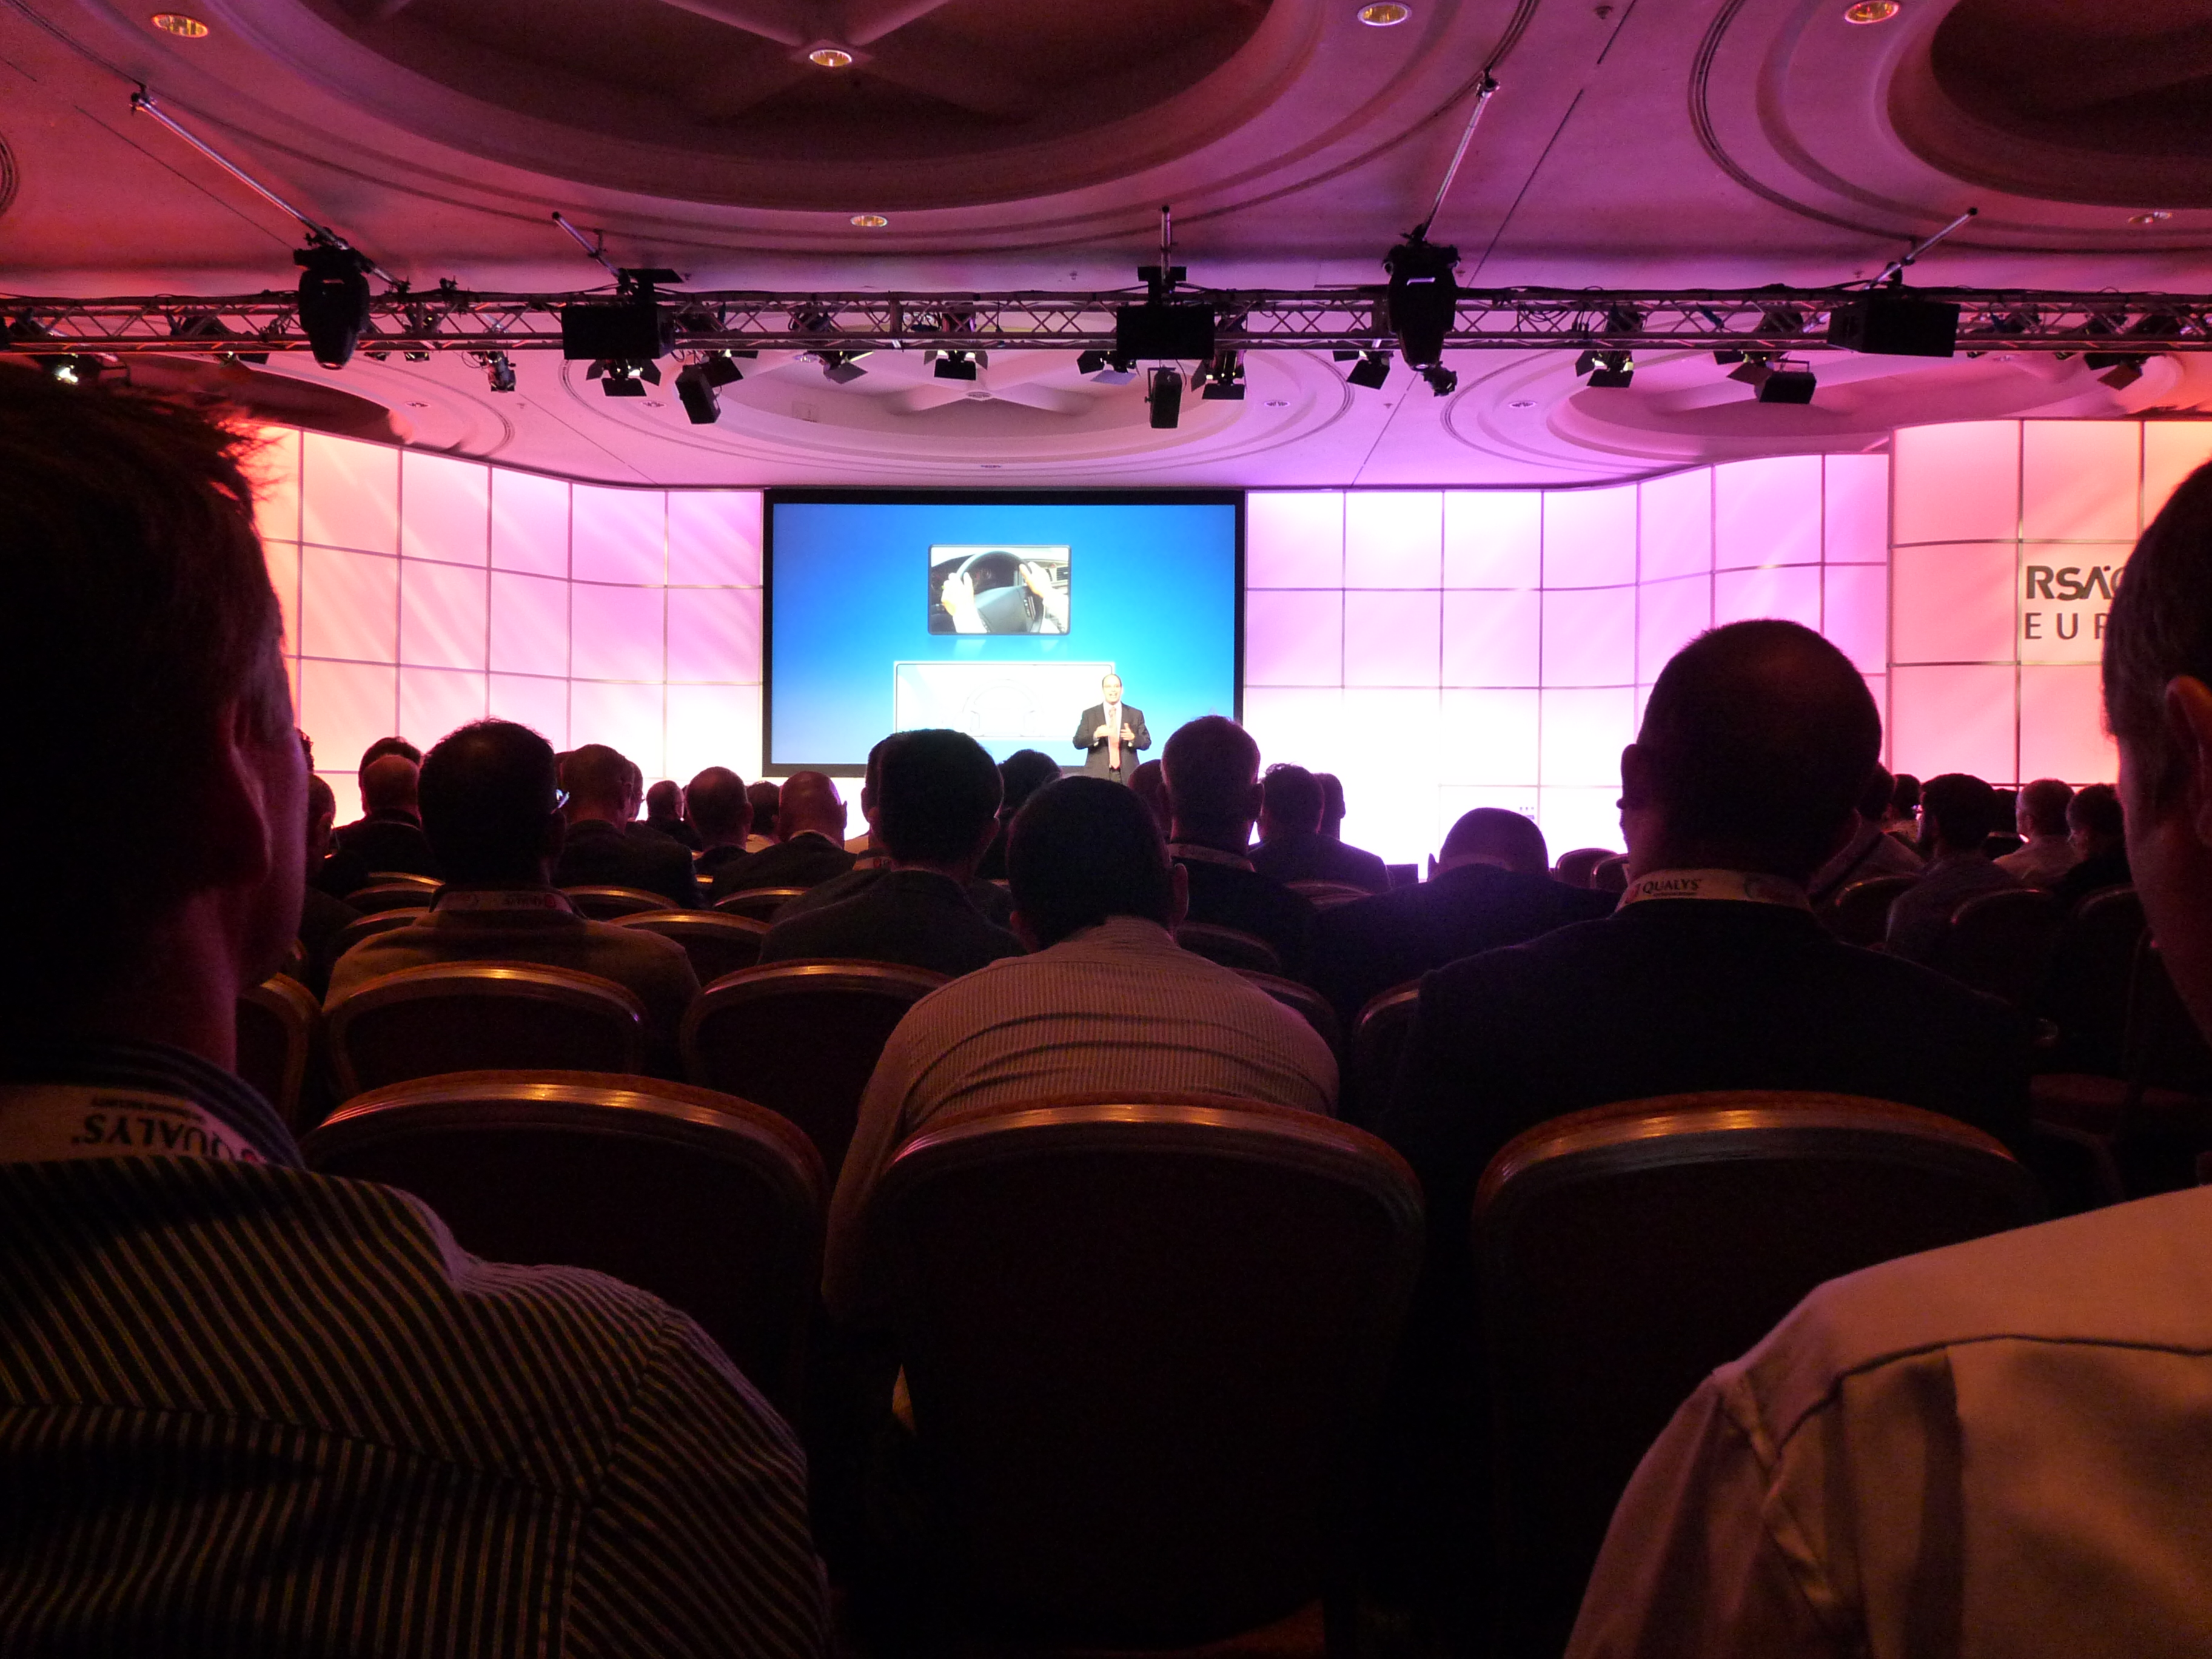 RSA_Conference_2012_Europe_02